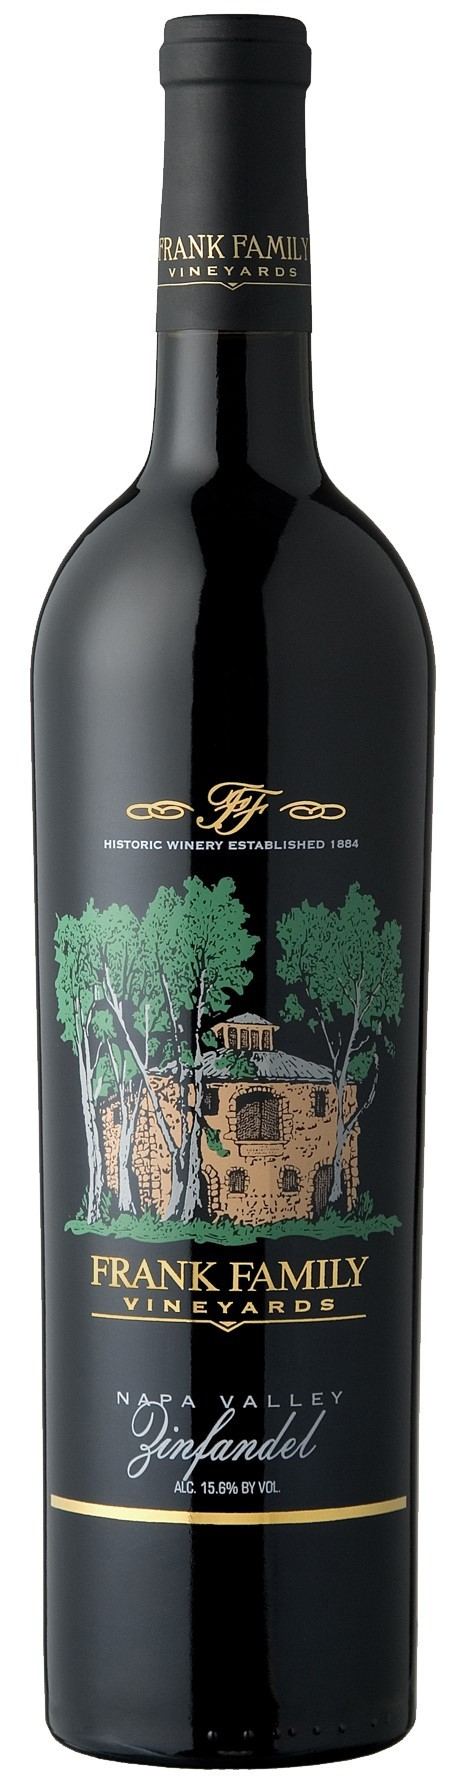 Frank Family Vineyards Zinfandel, Napa Valley 2012